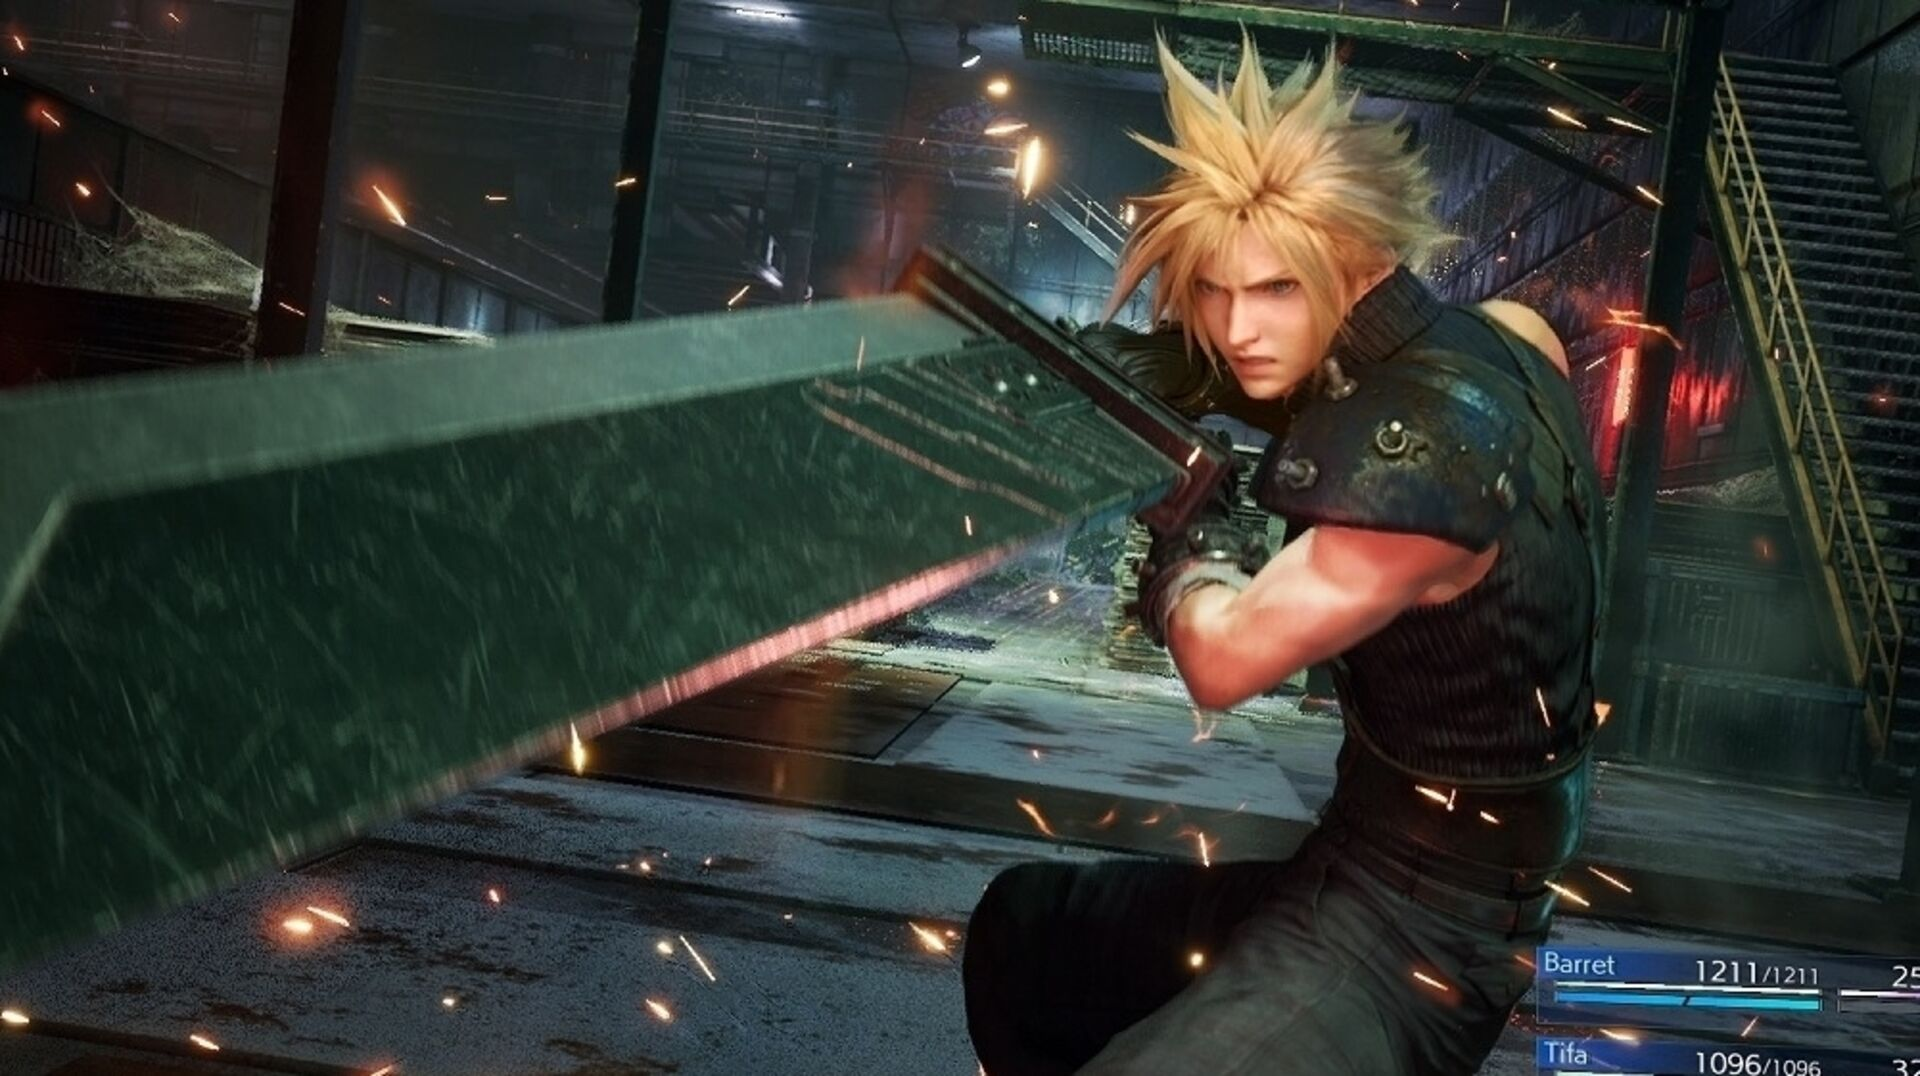 Stunning New Final Fantasy 7 Remake Trailer Revealed